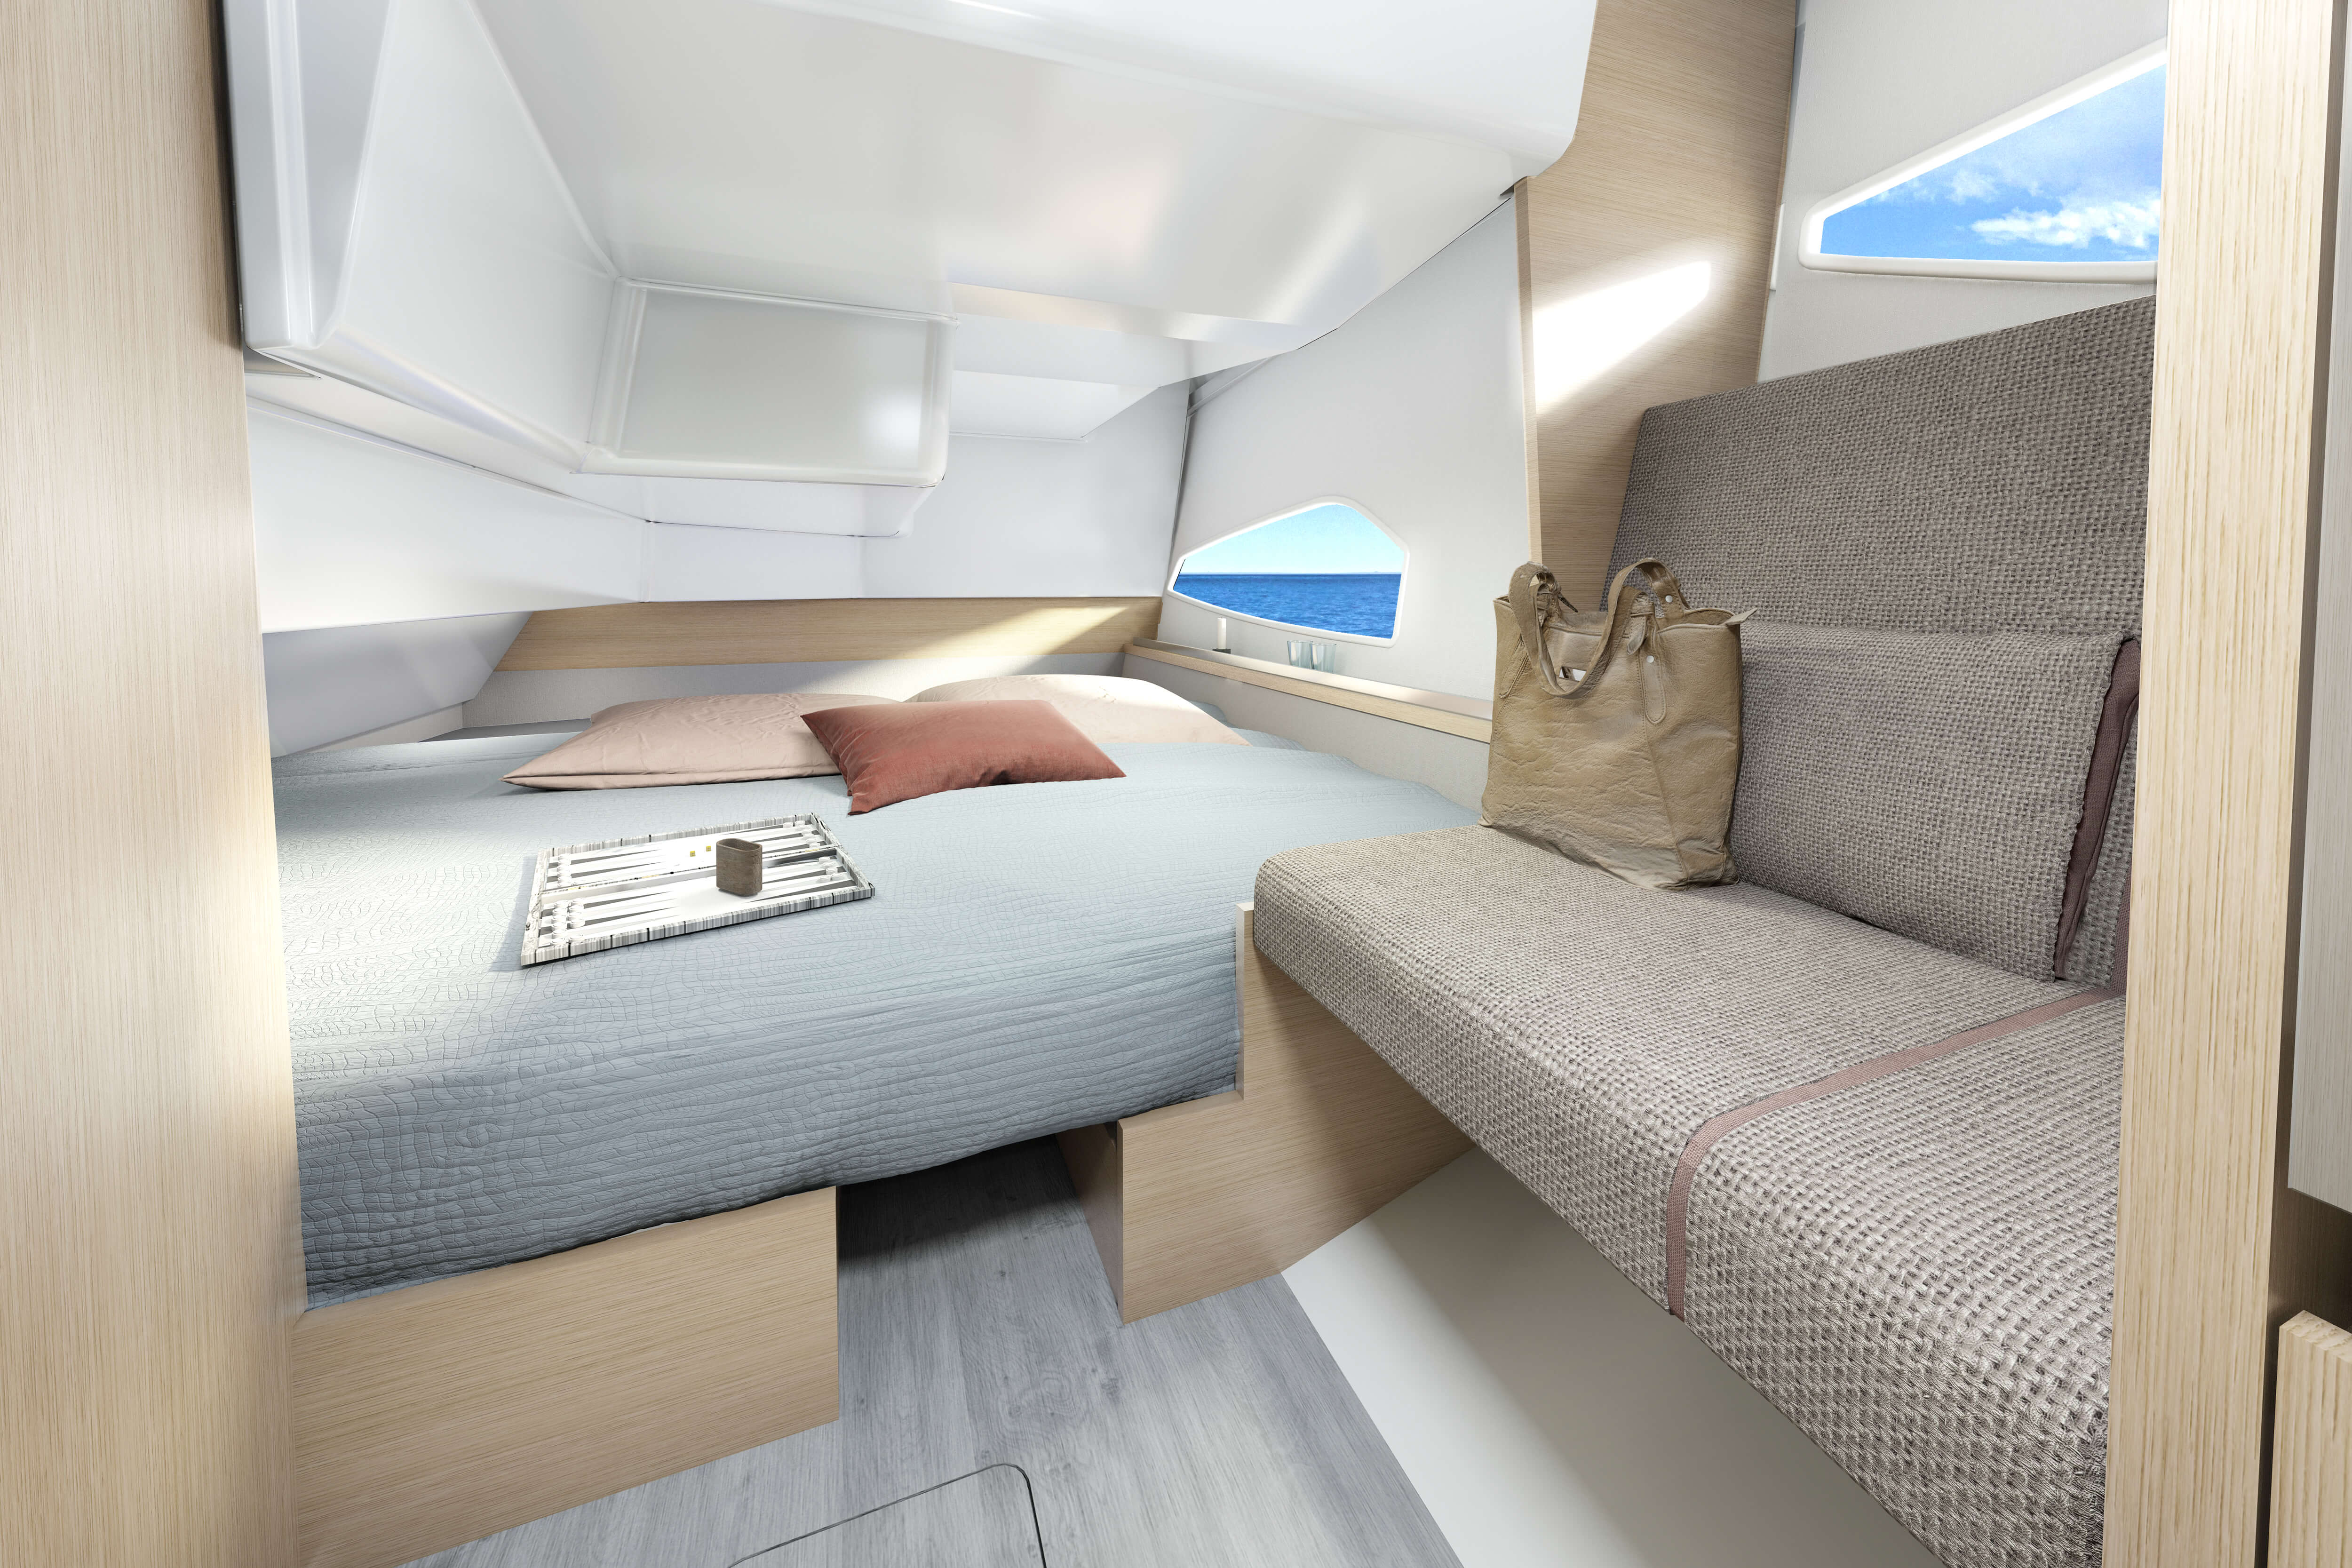 Sealine C335 guest cabin | All interiors can be configurated with various furniture woods and colours to reflect your personal style. | Sealine